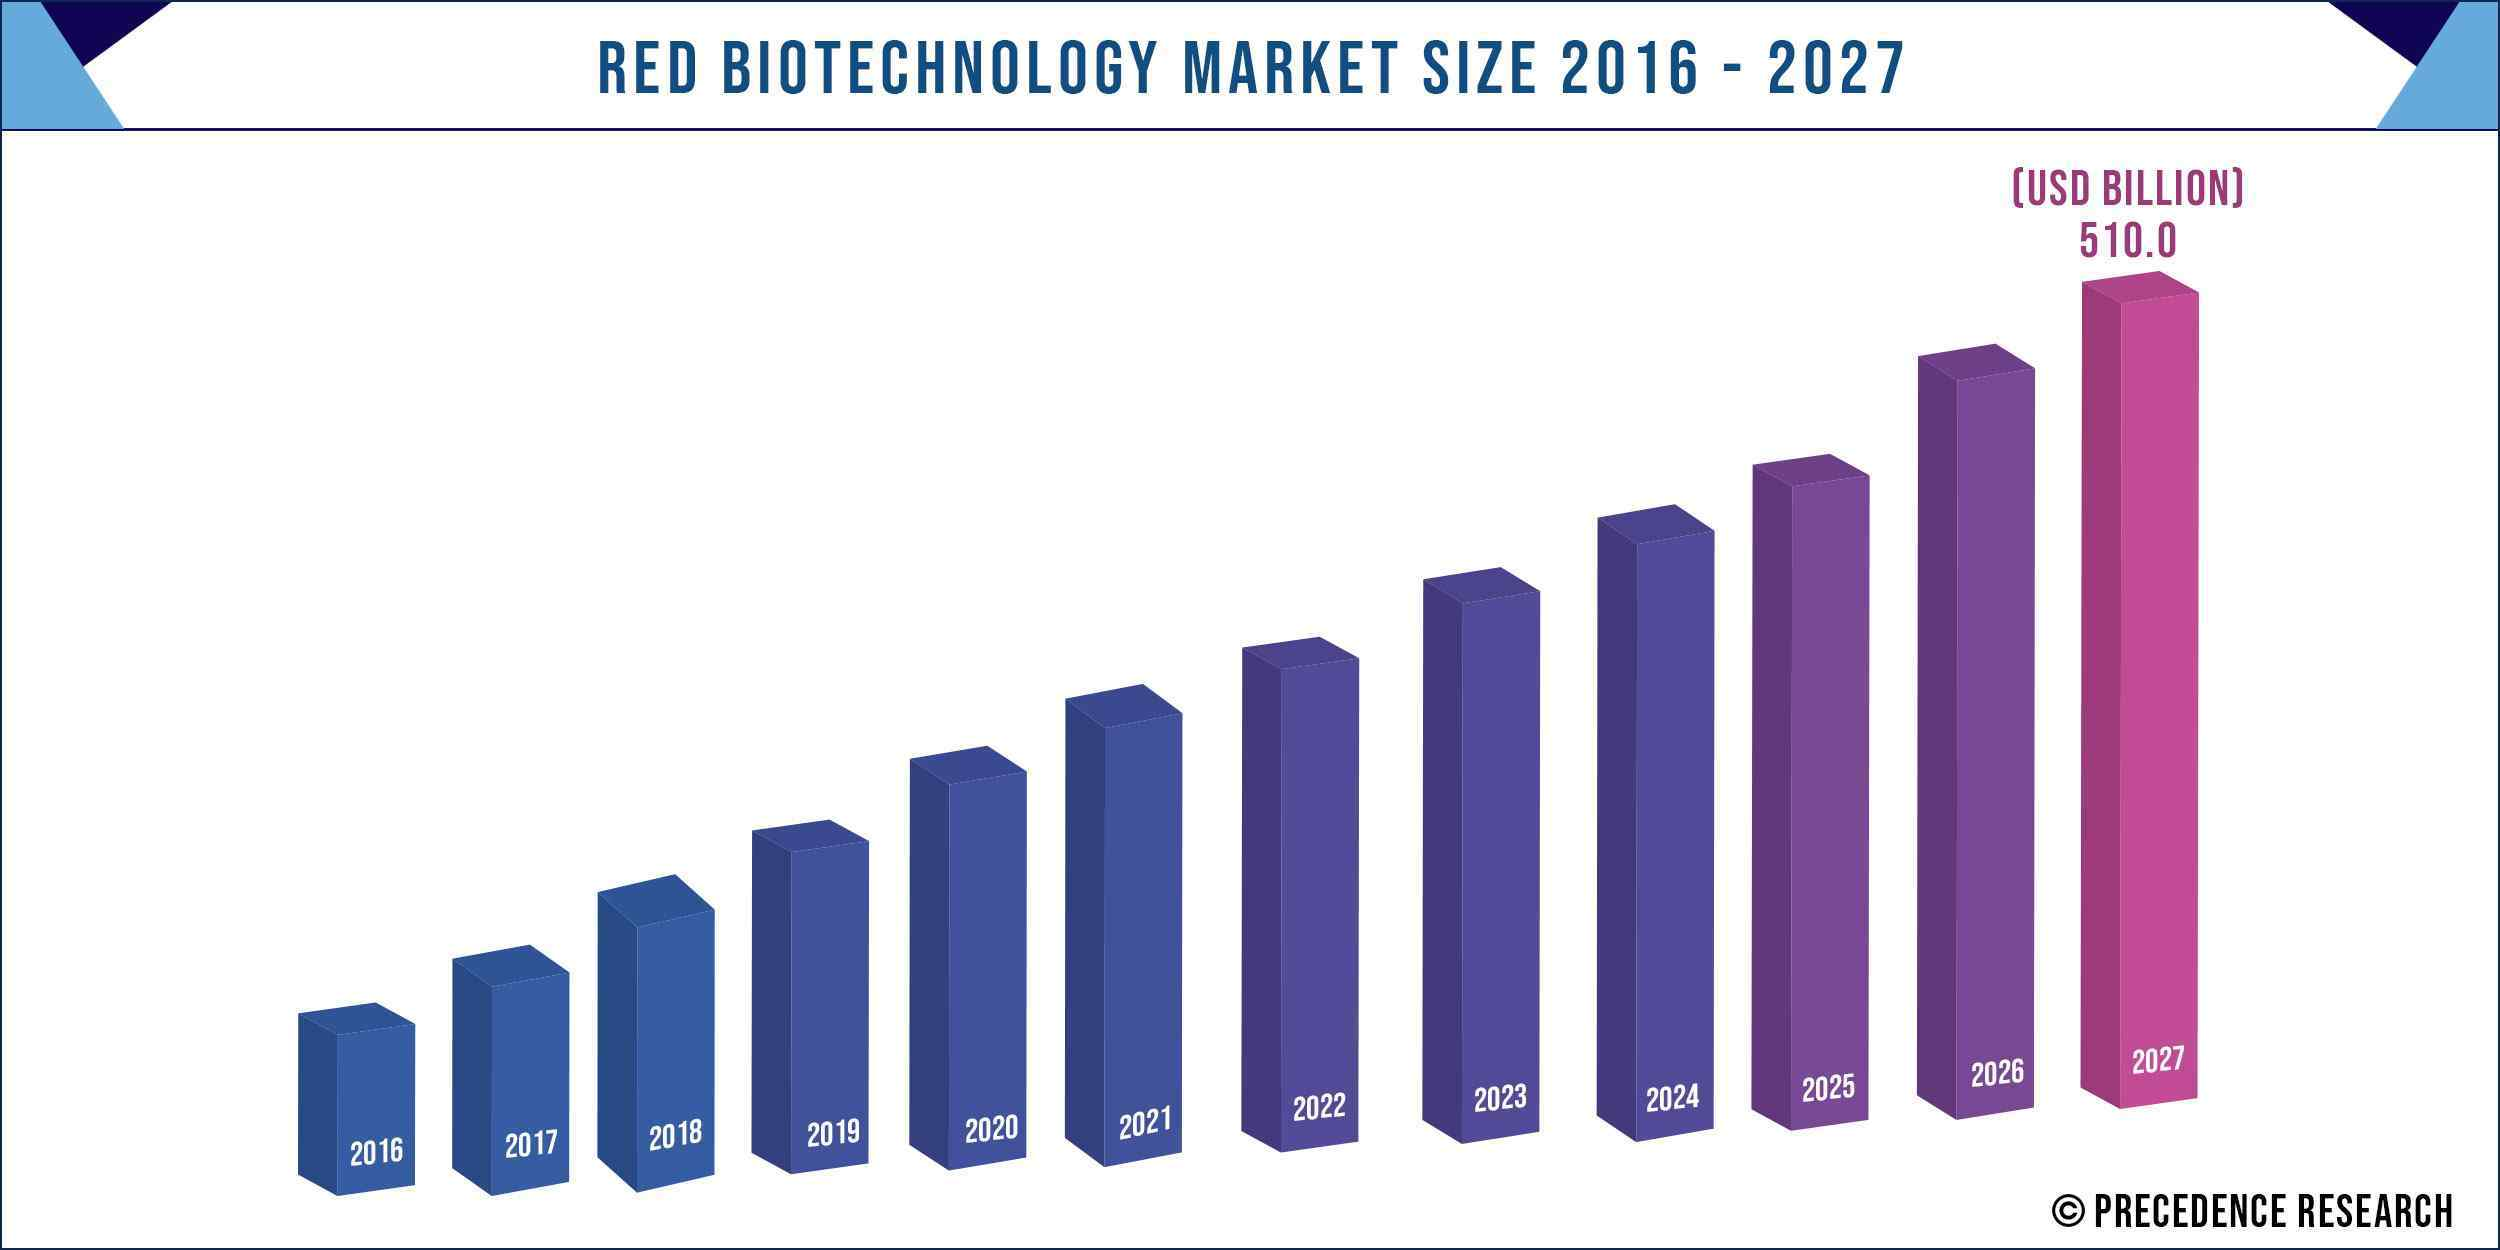 Red Biotechnology Market Size 2016 to 2027